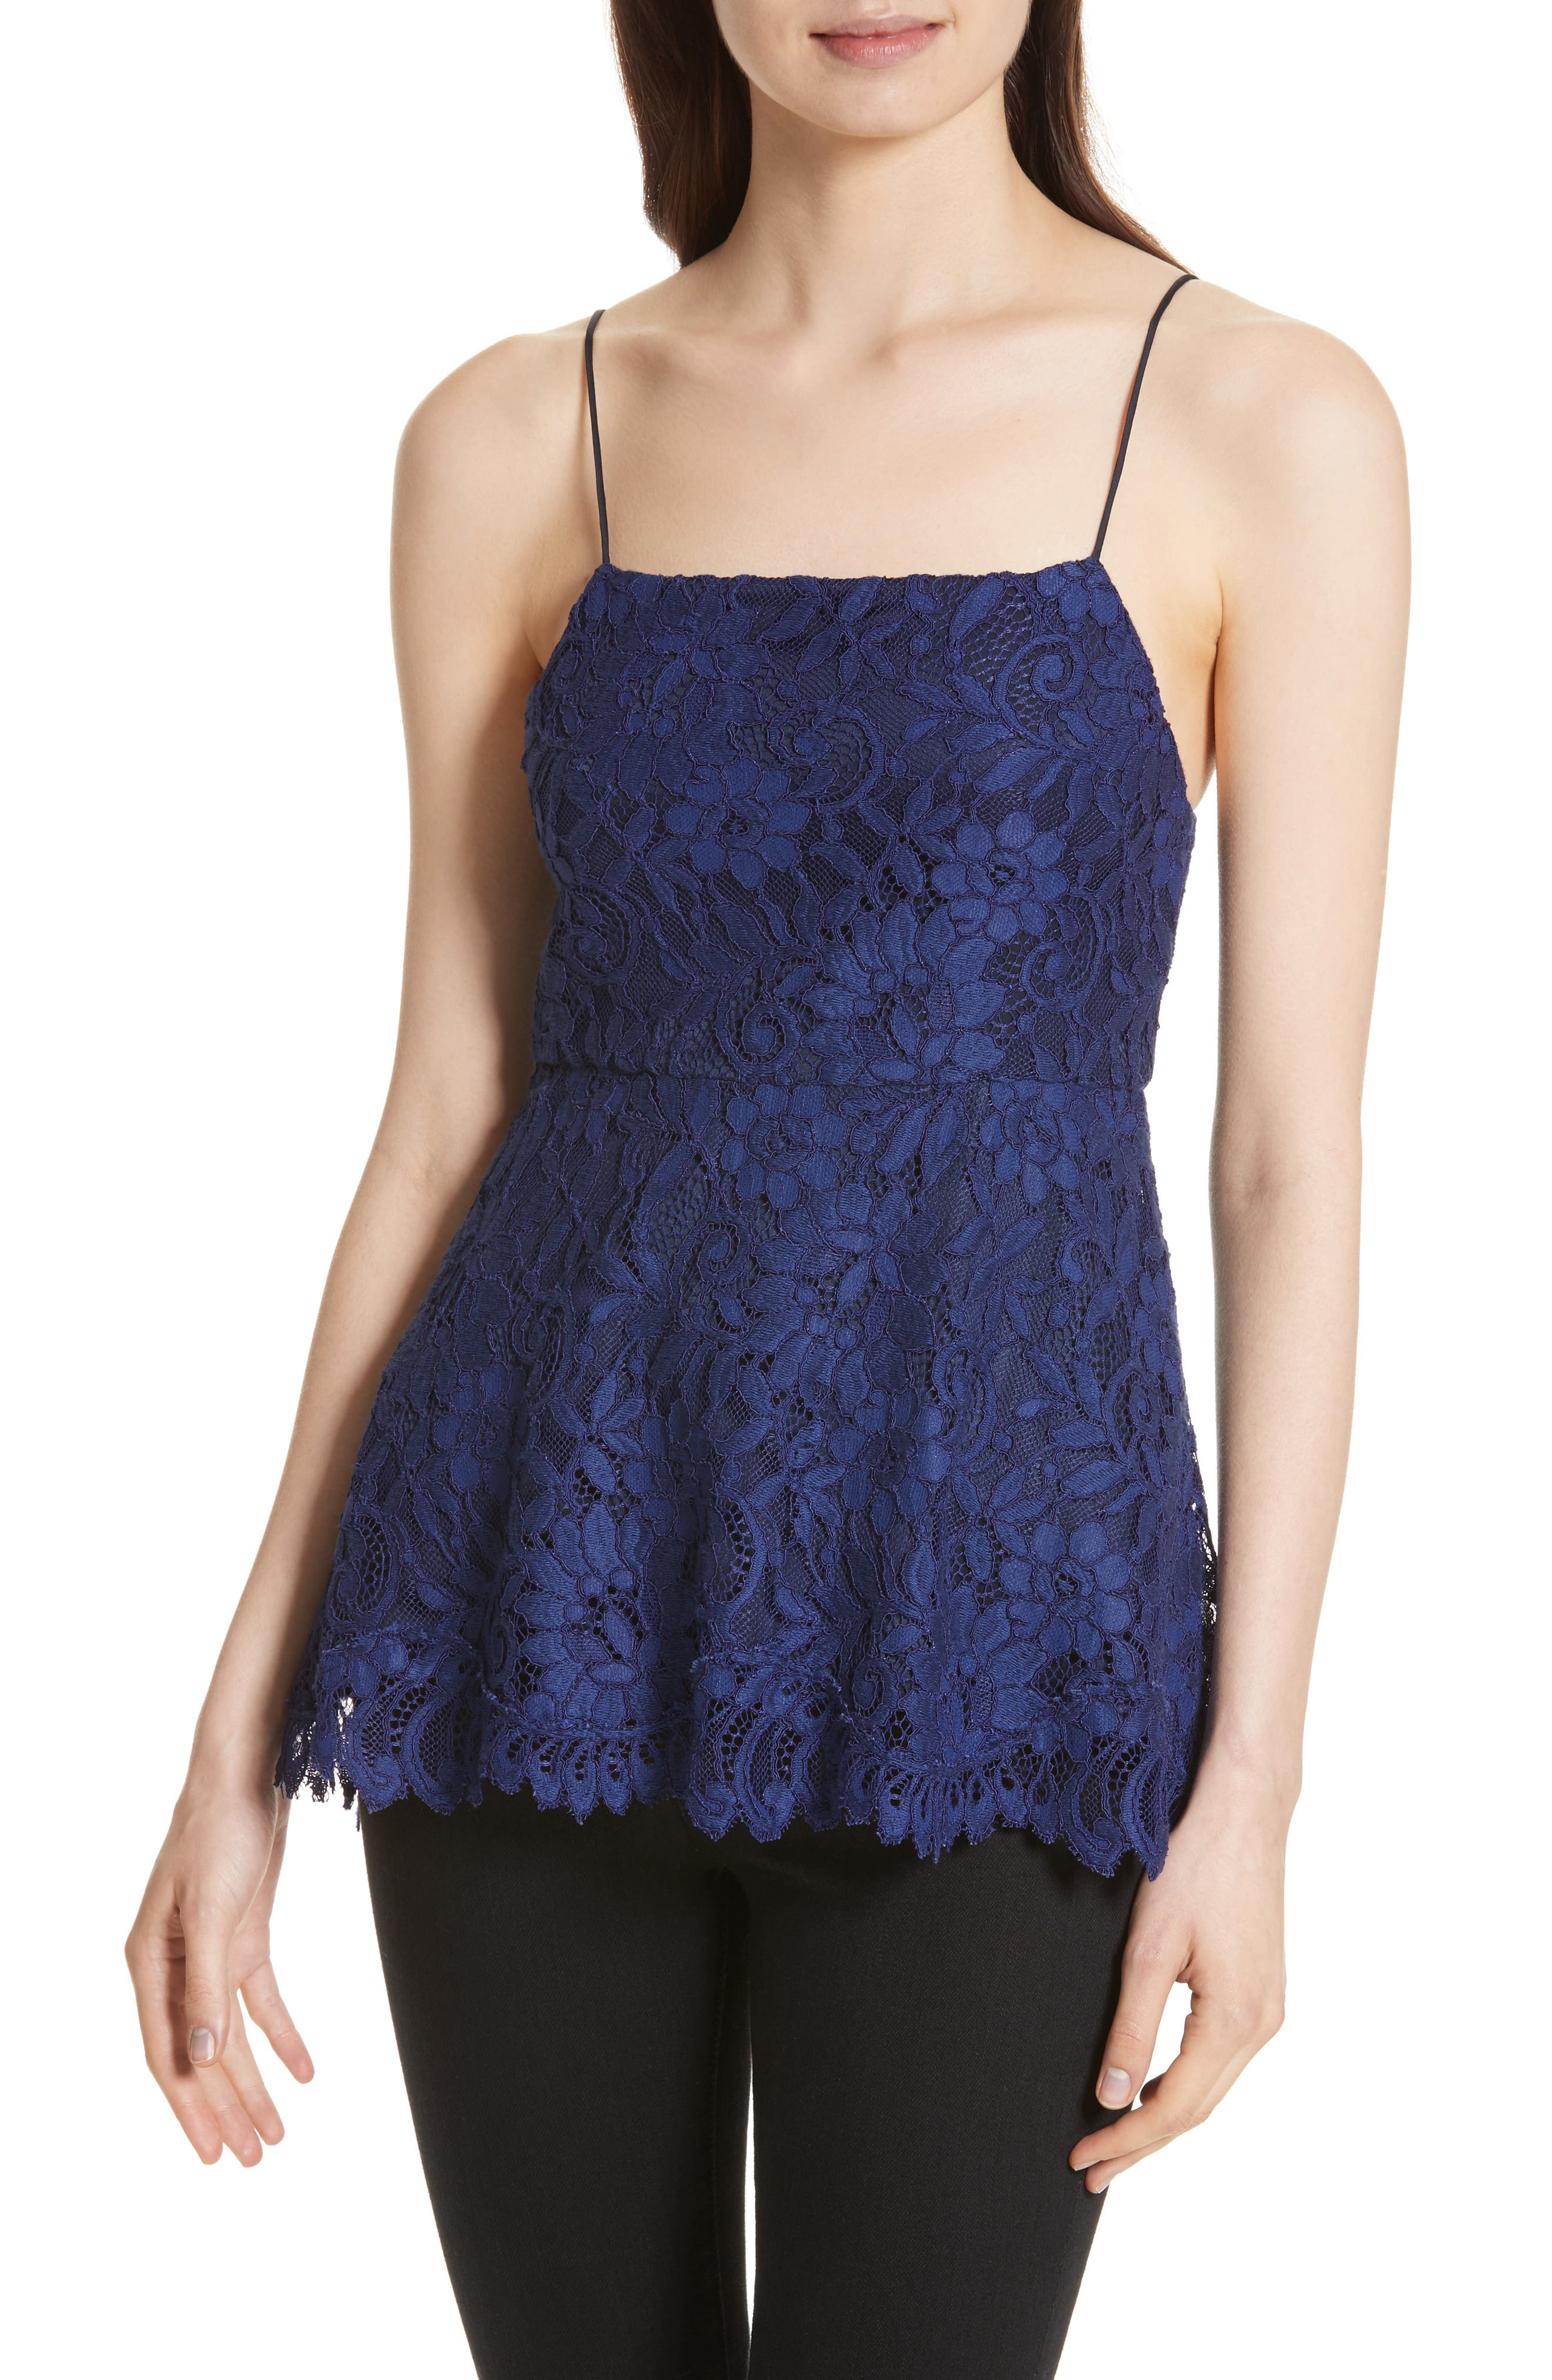 Alternate Image 1 Selected - Alice + Olivia Maxine Lace Peplum Camisole